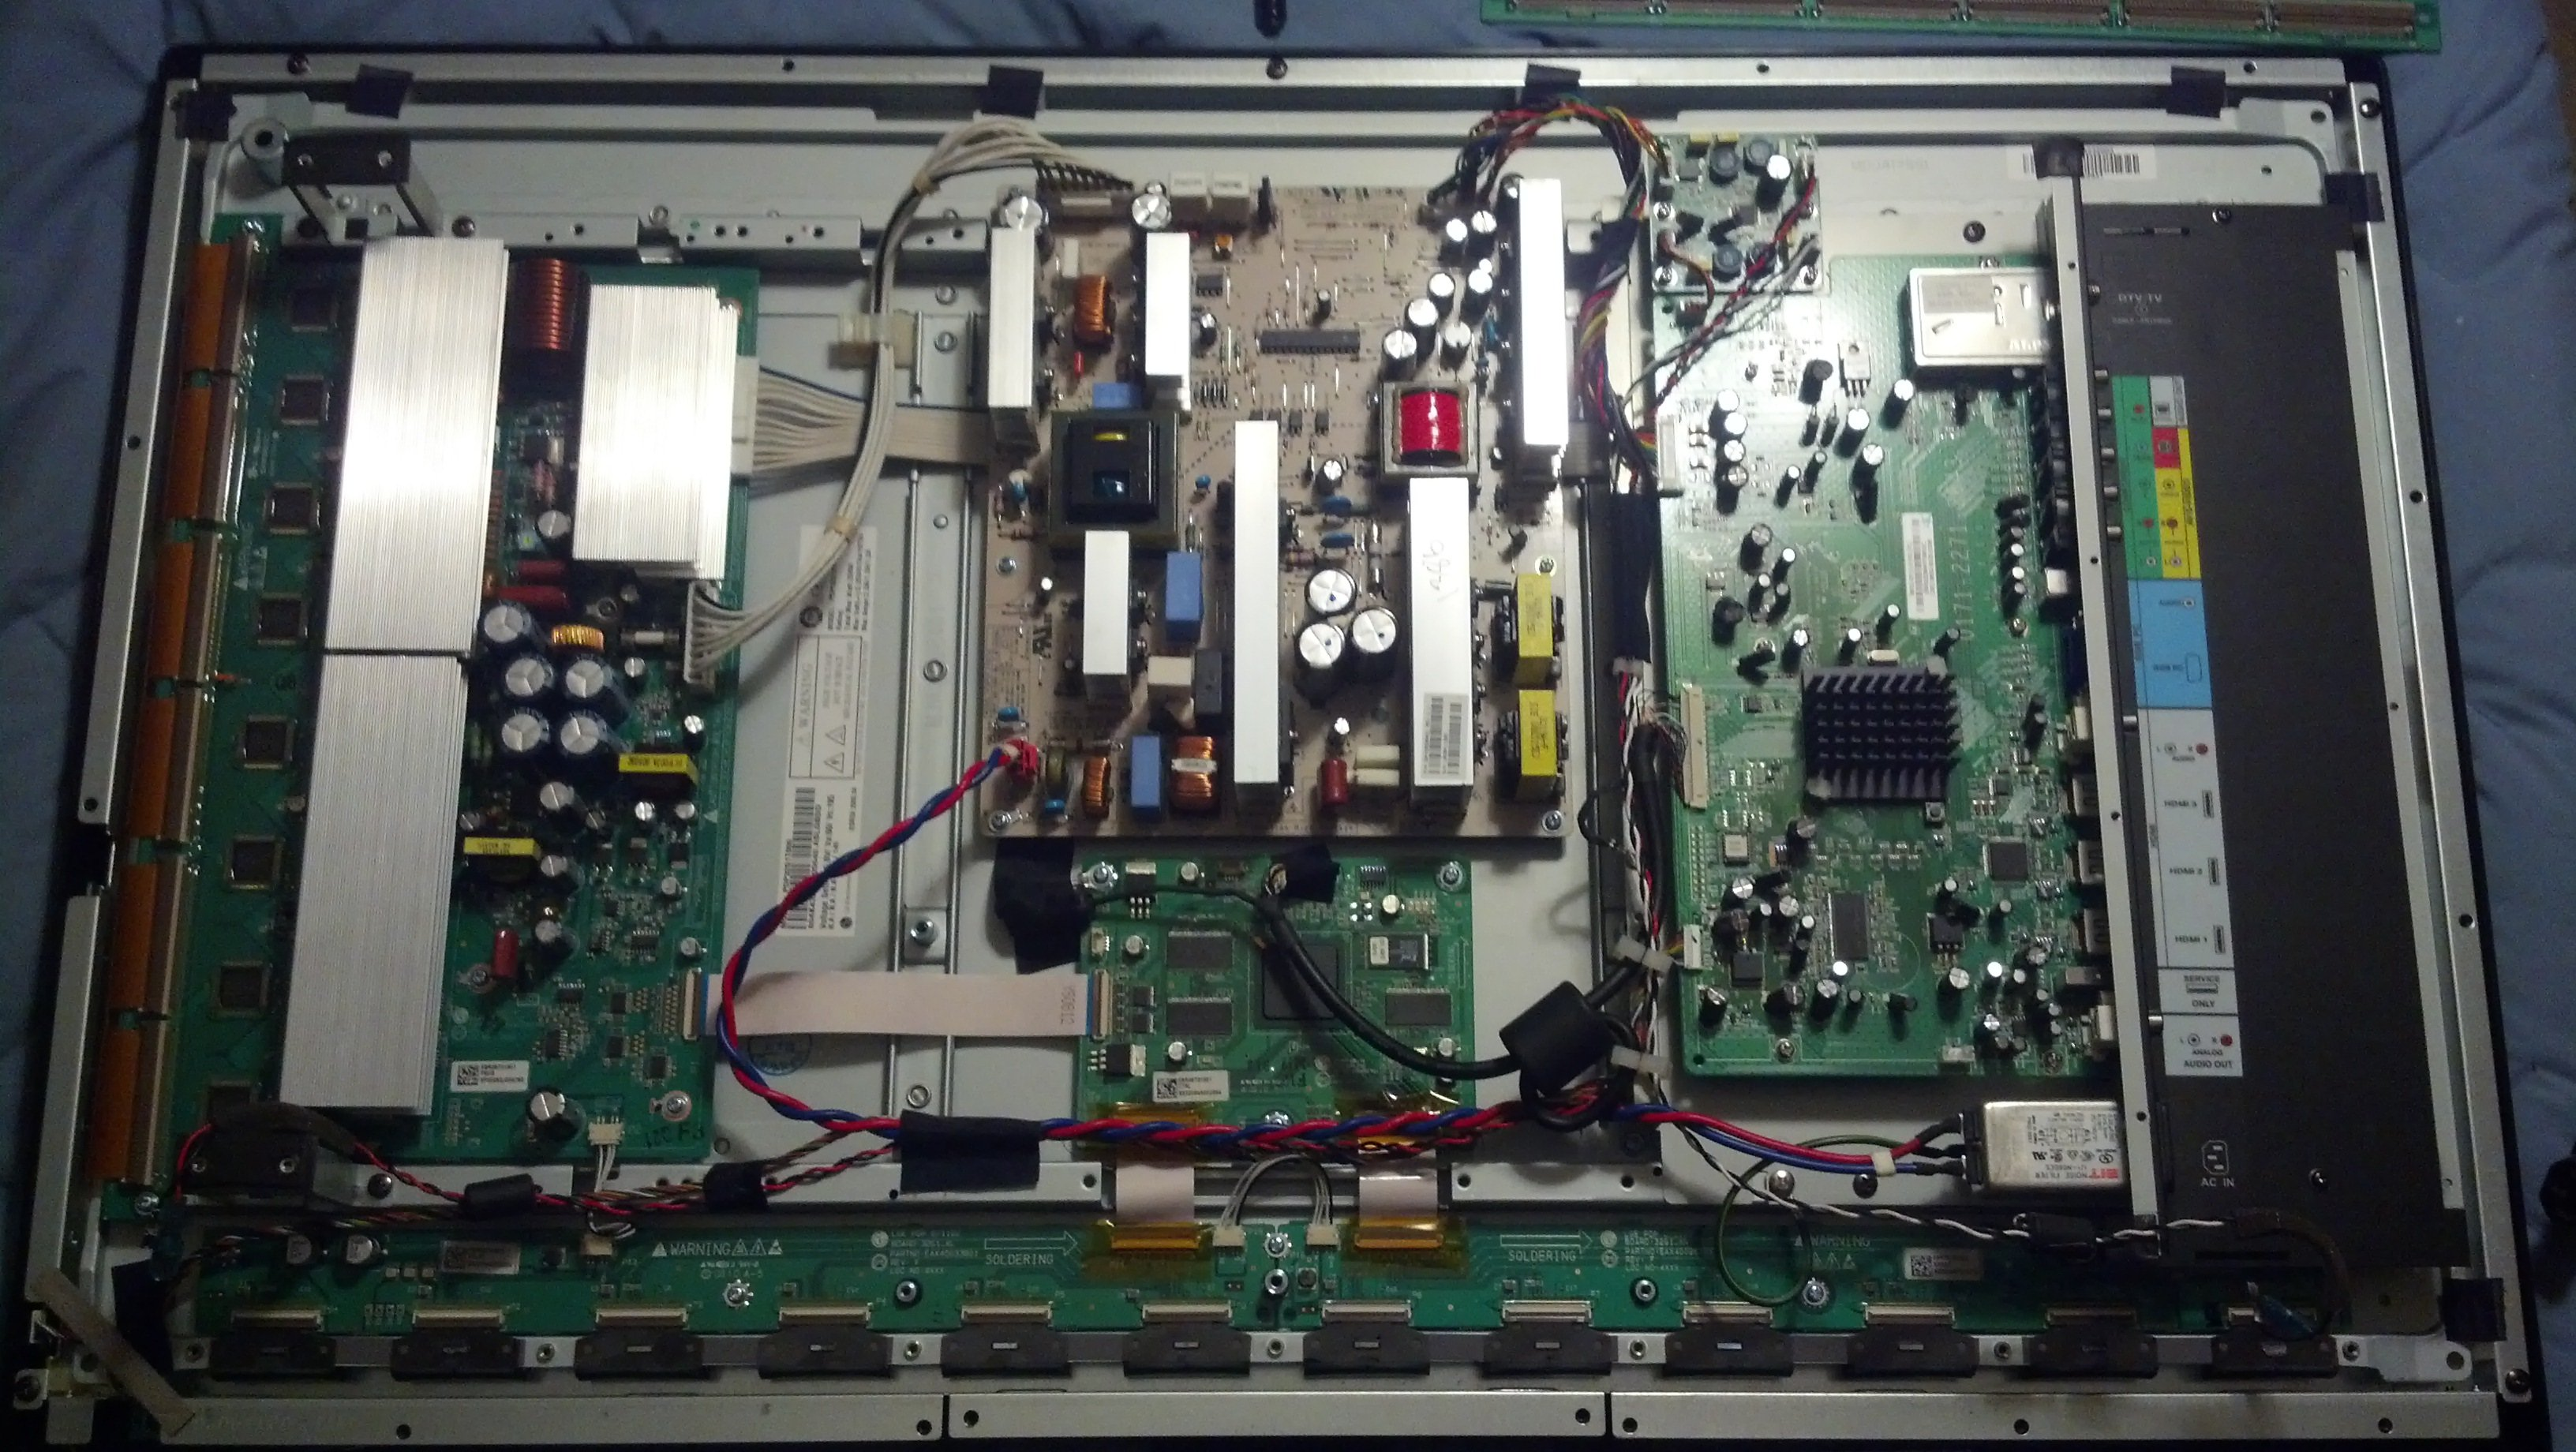 vizio vp plasma pop of death fixed page avs forum past troubleshooting the ribbons and 4 pin cable between the two bottom chips have never been completely disconnected while trying to power on the tv